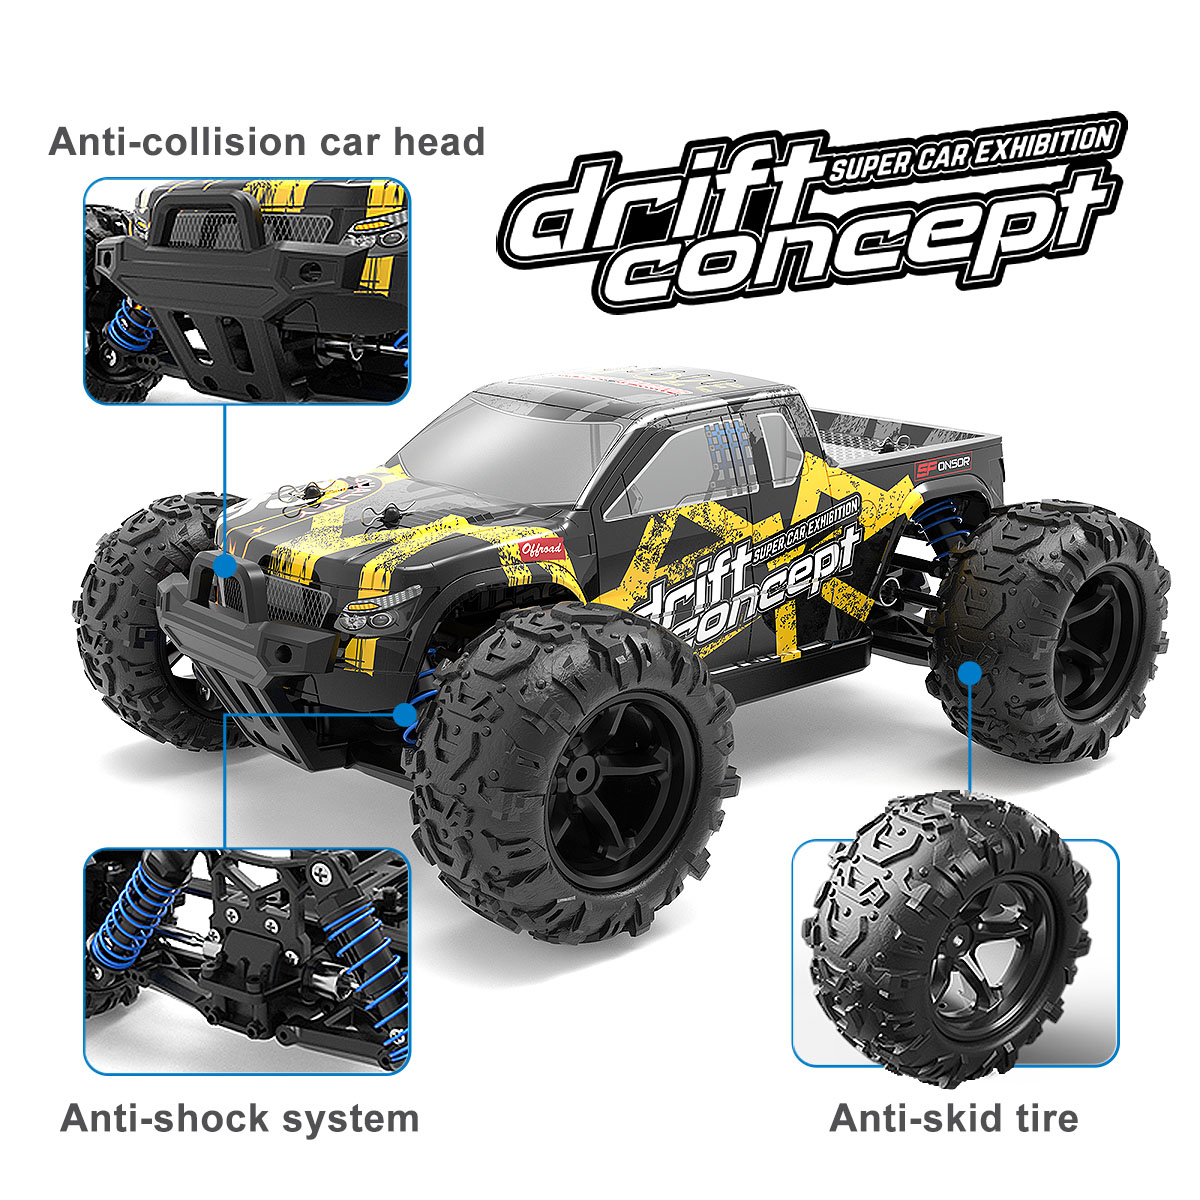 40+km/h Remote Control Car 1:18 <font><b>Scale</b></font> High Speed Off Road Vehicle Toys <font><b>RC</b></font> Buggy Drift Driving Car for Kids and Adults Gift image